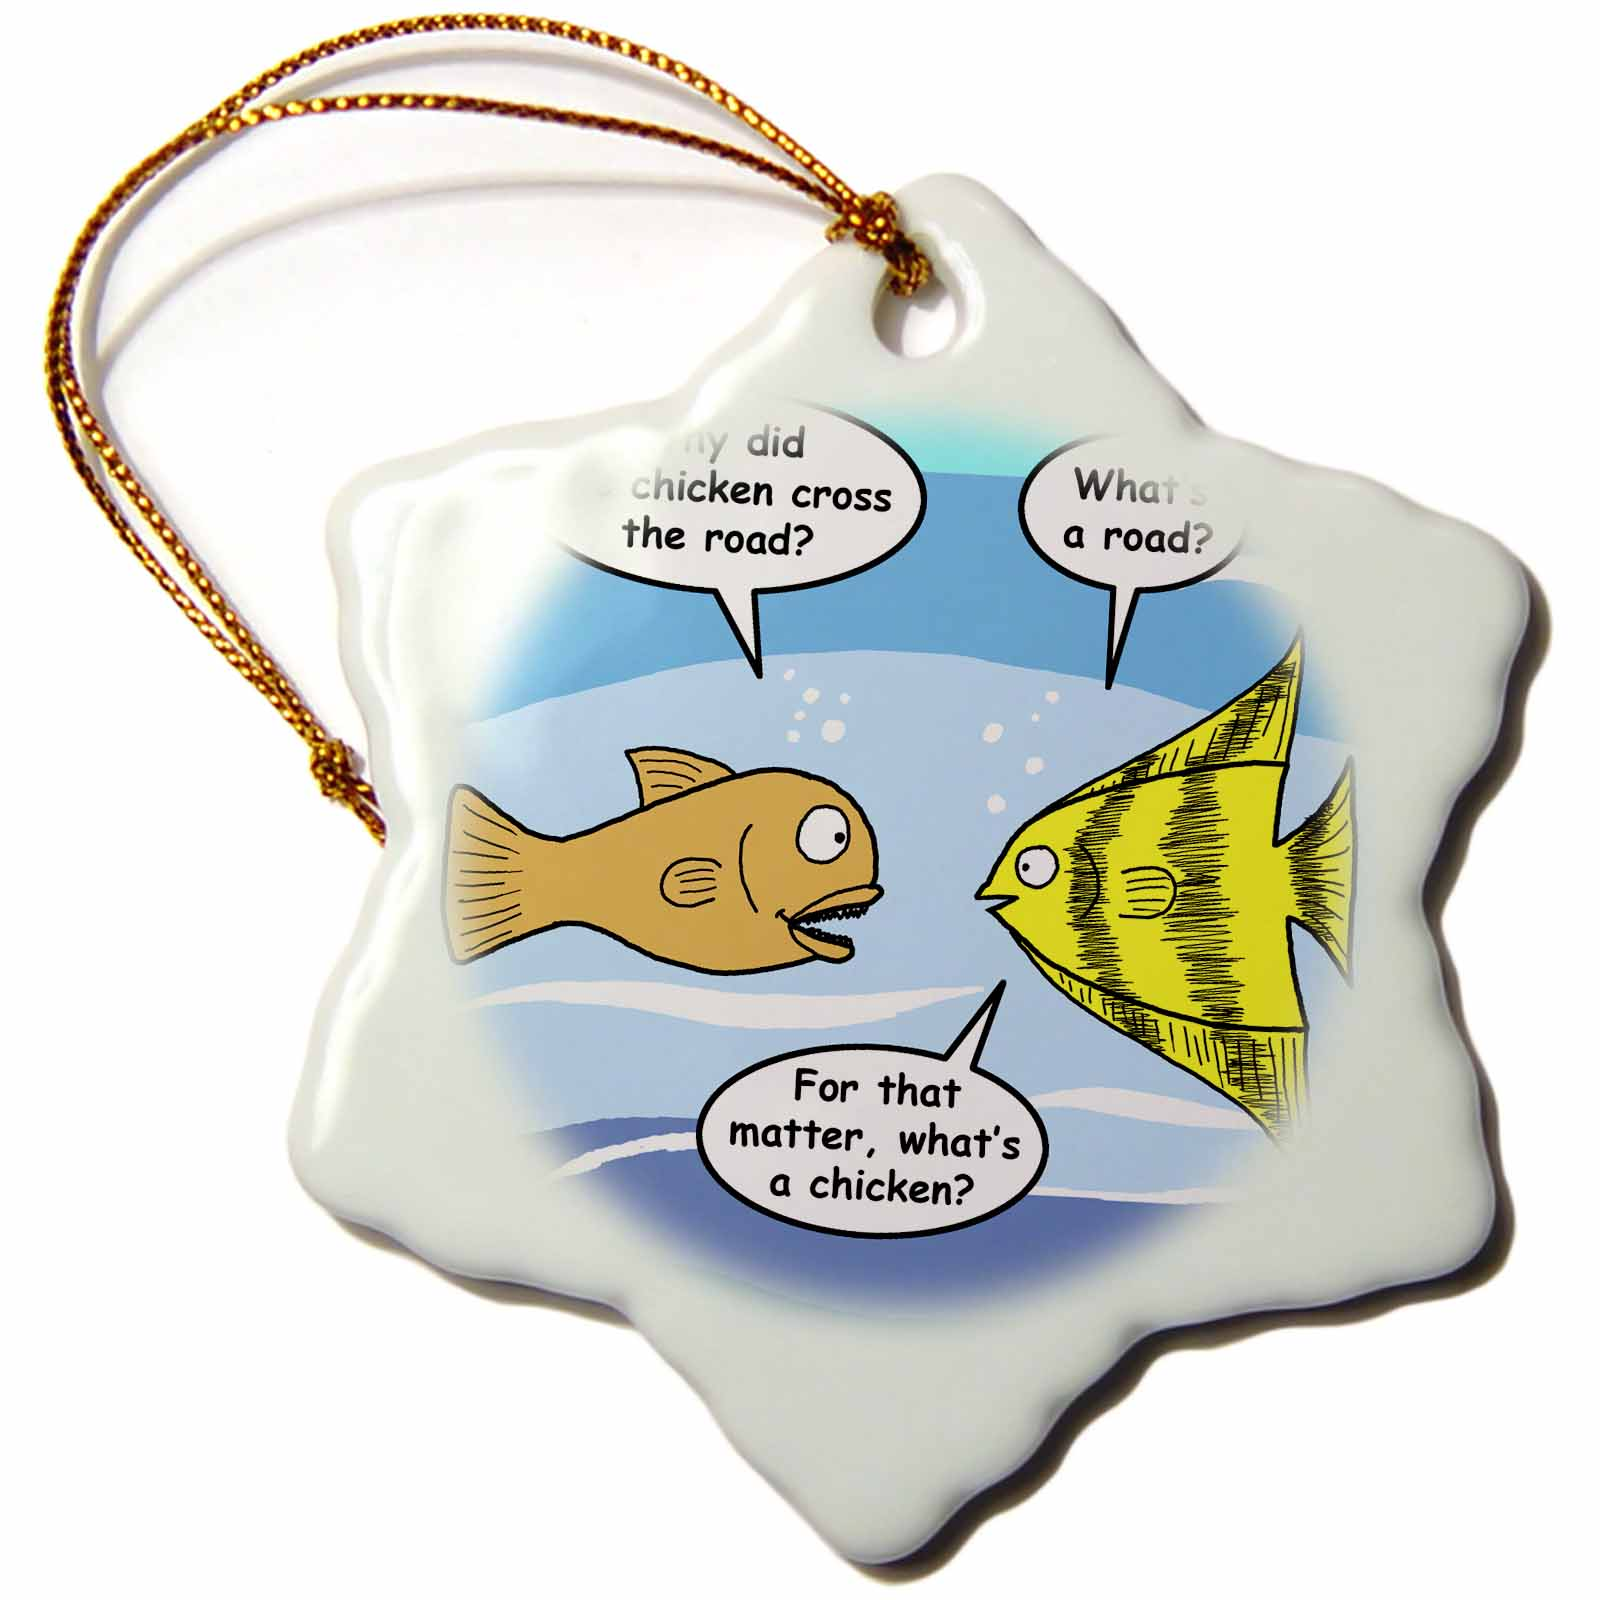 3dRose Fish why did the chicken cross the road joke, Snowflake Ornament, Porcelain, 3-inch